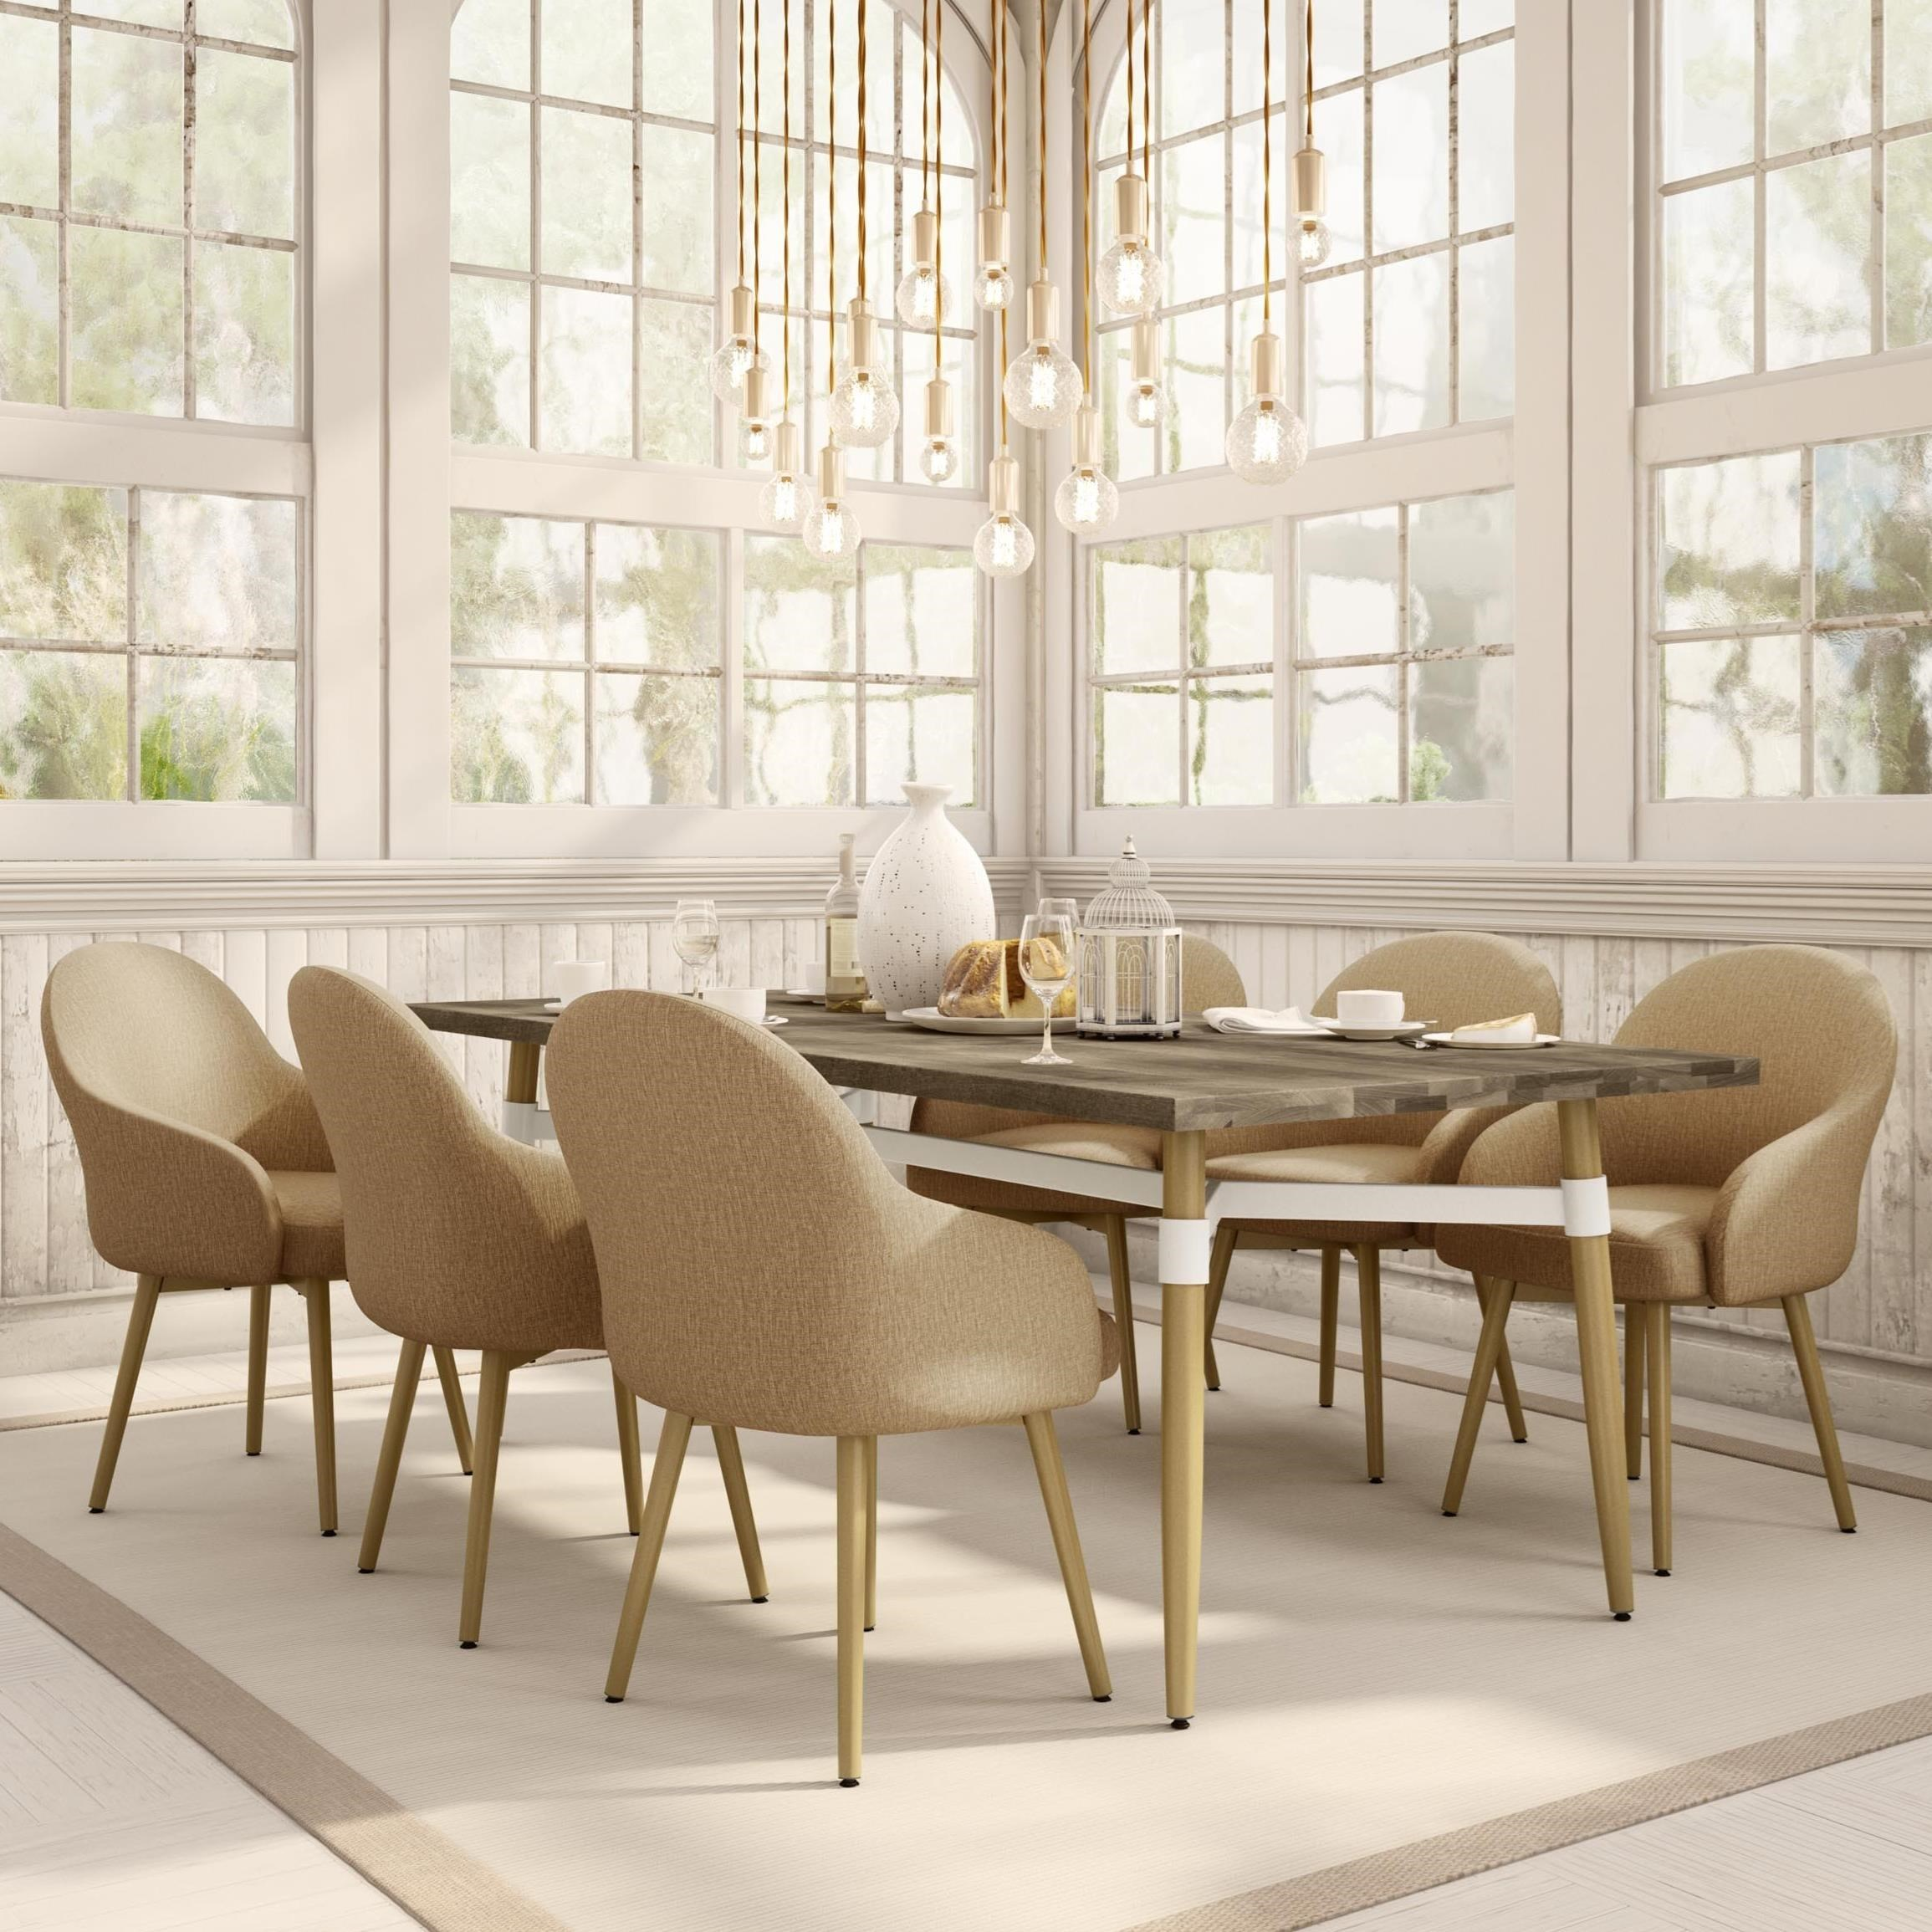 7-Piece Link Dining Table Set